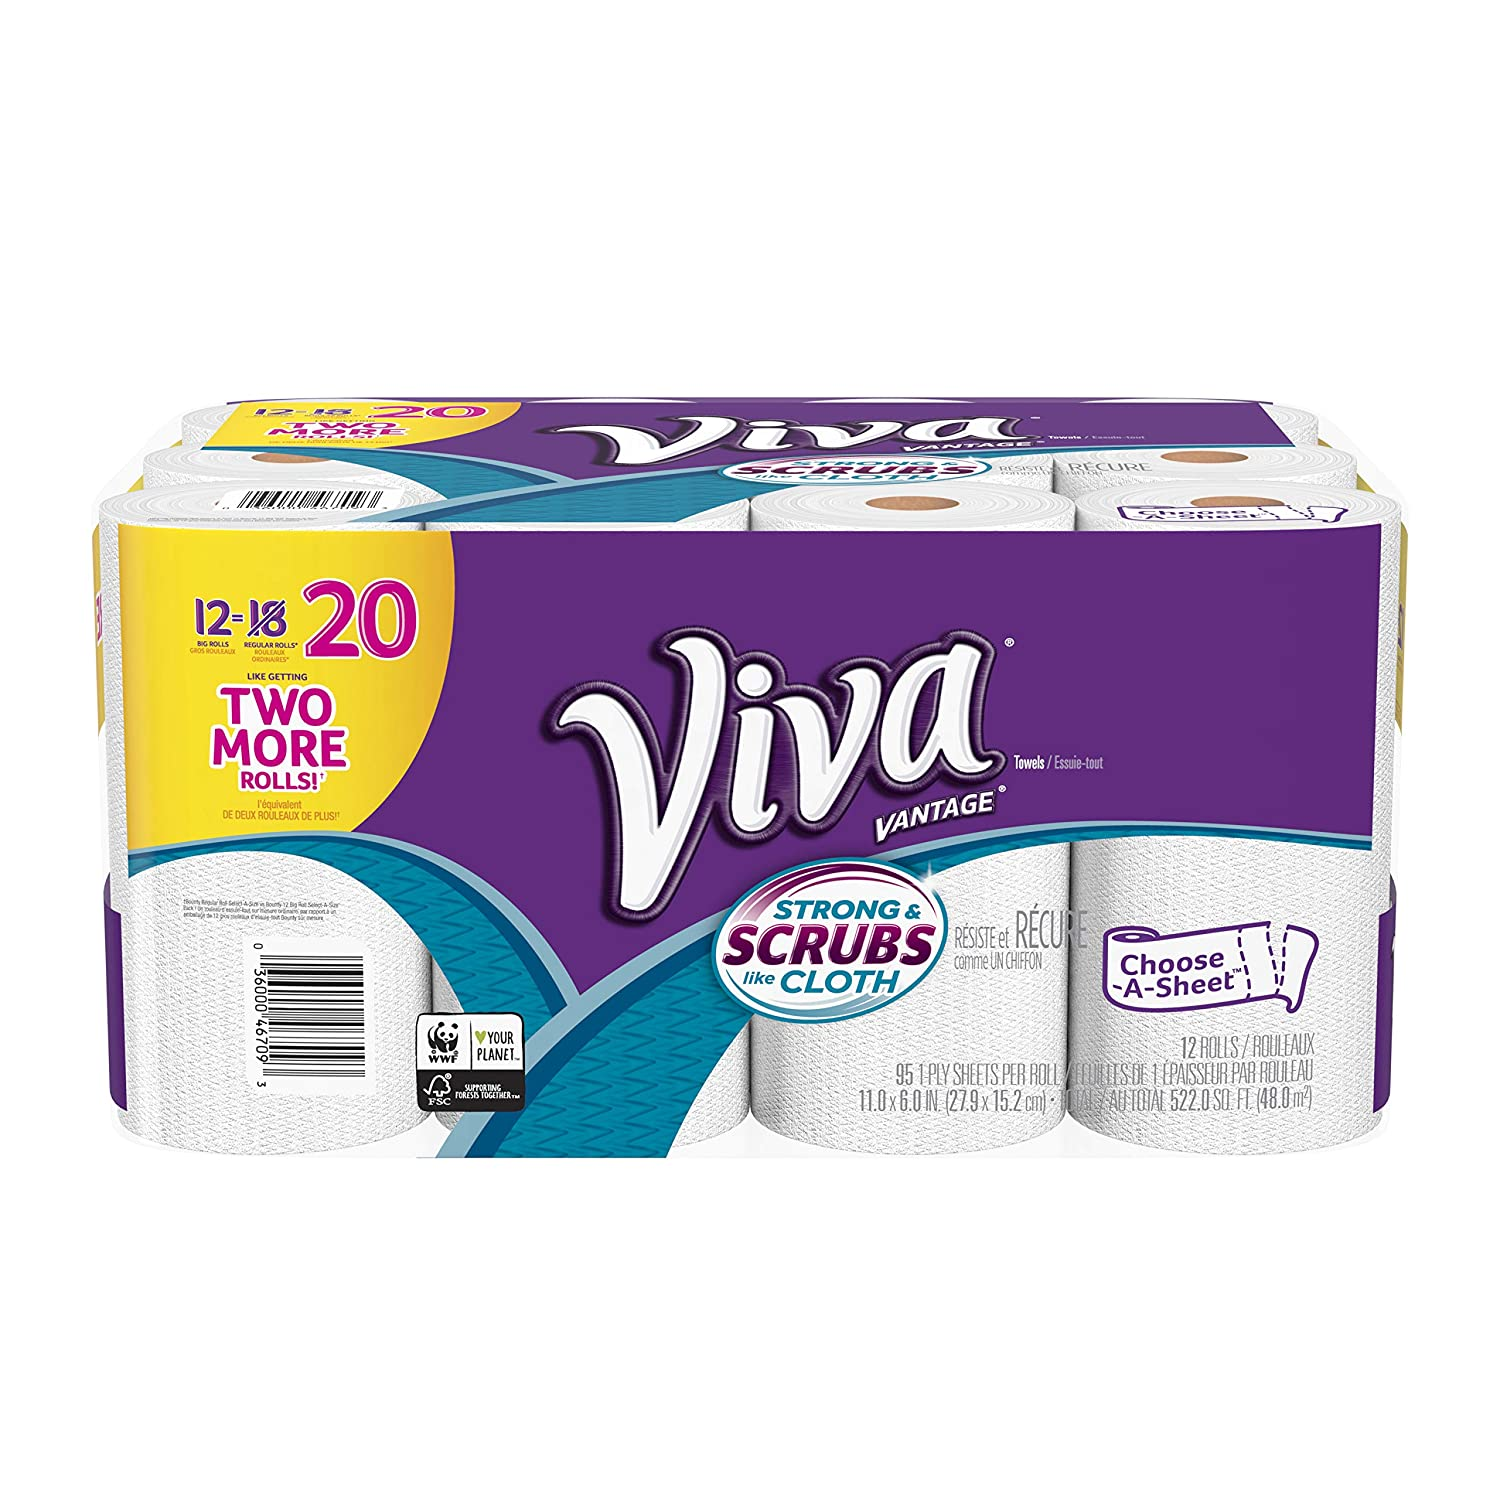 VIVA Vantage Choose-A-Sheet* Paper Towels, White, Big Roll, 2 Rolls Kimberly Clark